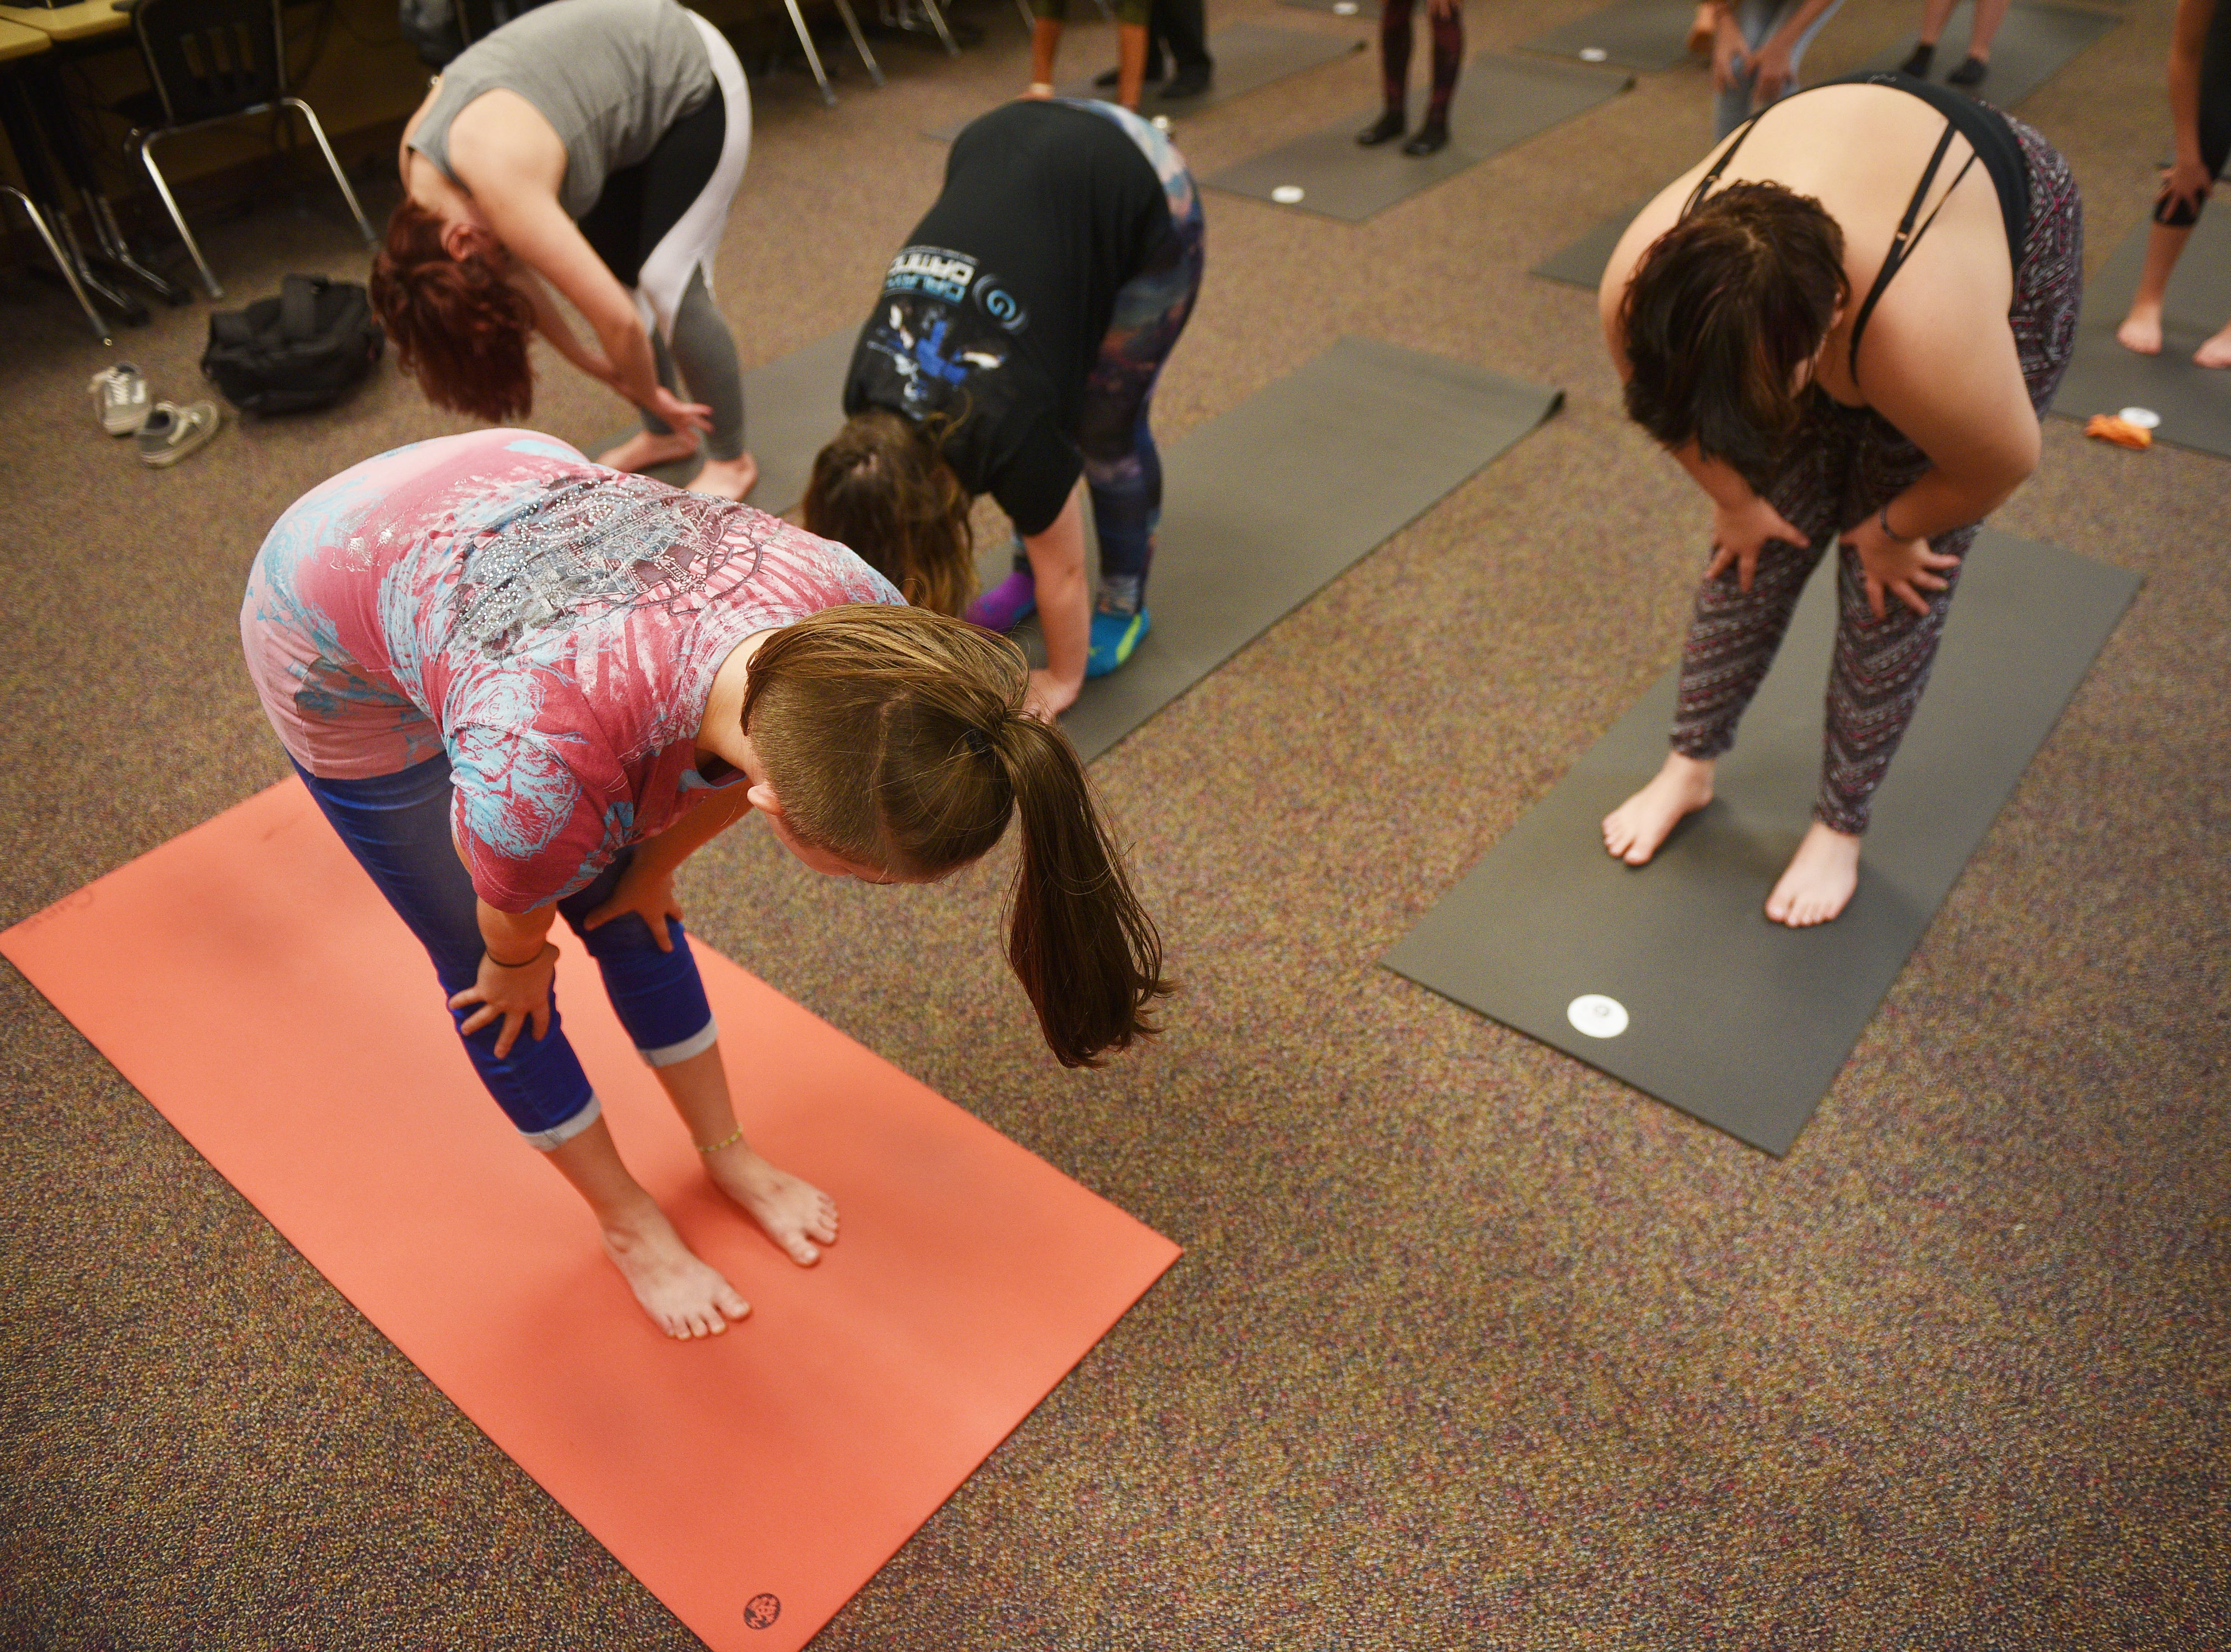 New Tech High School teacher Chris Coughlin has New Tech High School senior Emma Sivering, left, help lead the yoga class Tuesday, Aug 28, in Sioux Falls. Sivering is working towards becoming a certified yoga instructor.